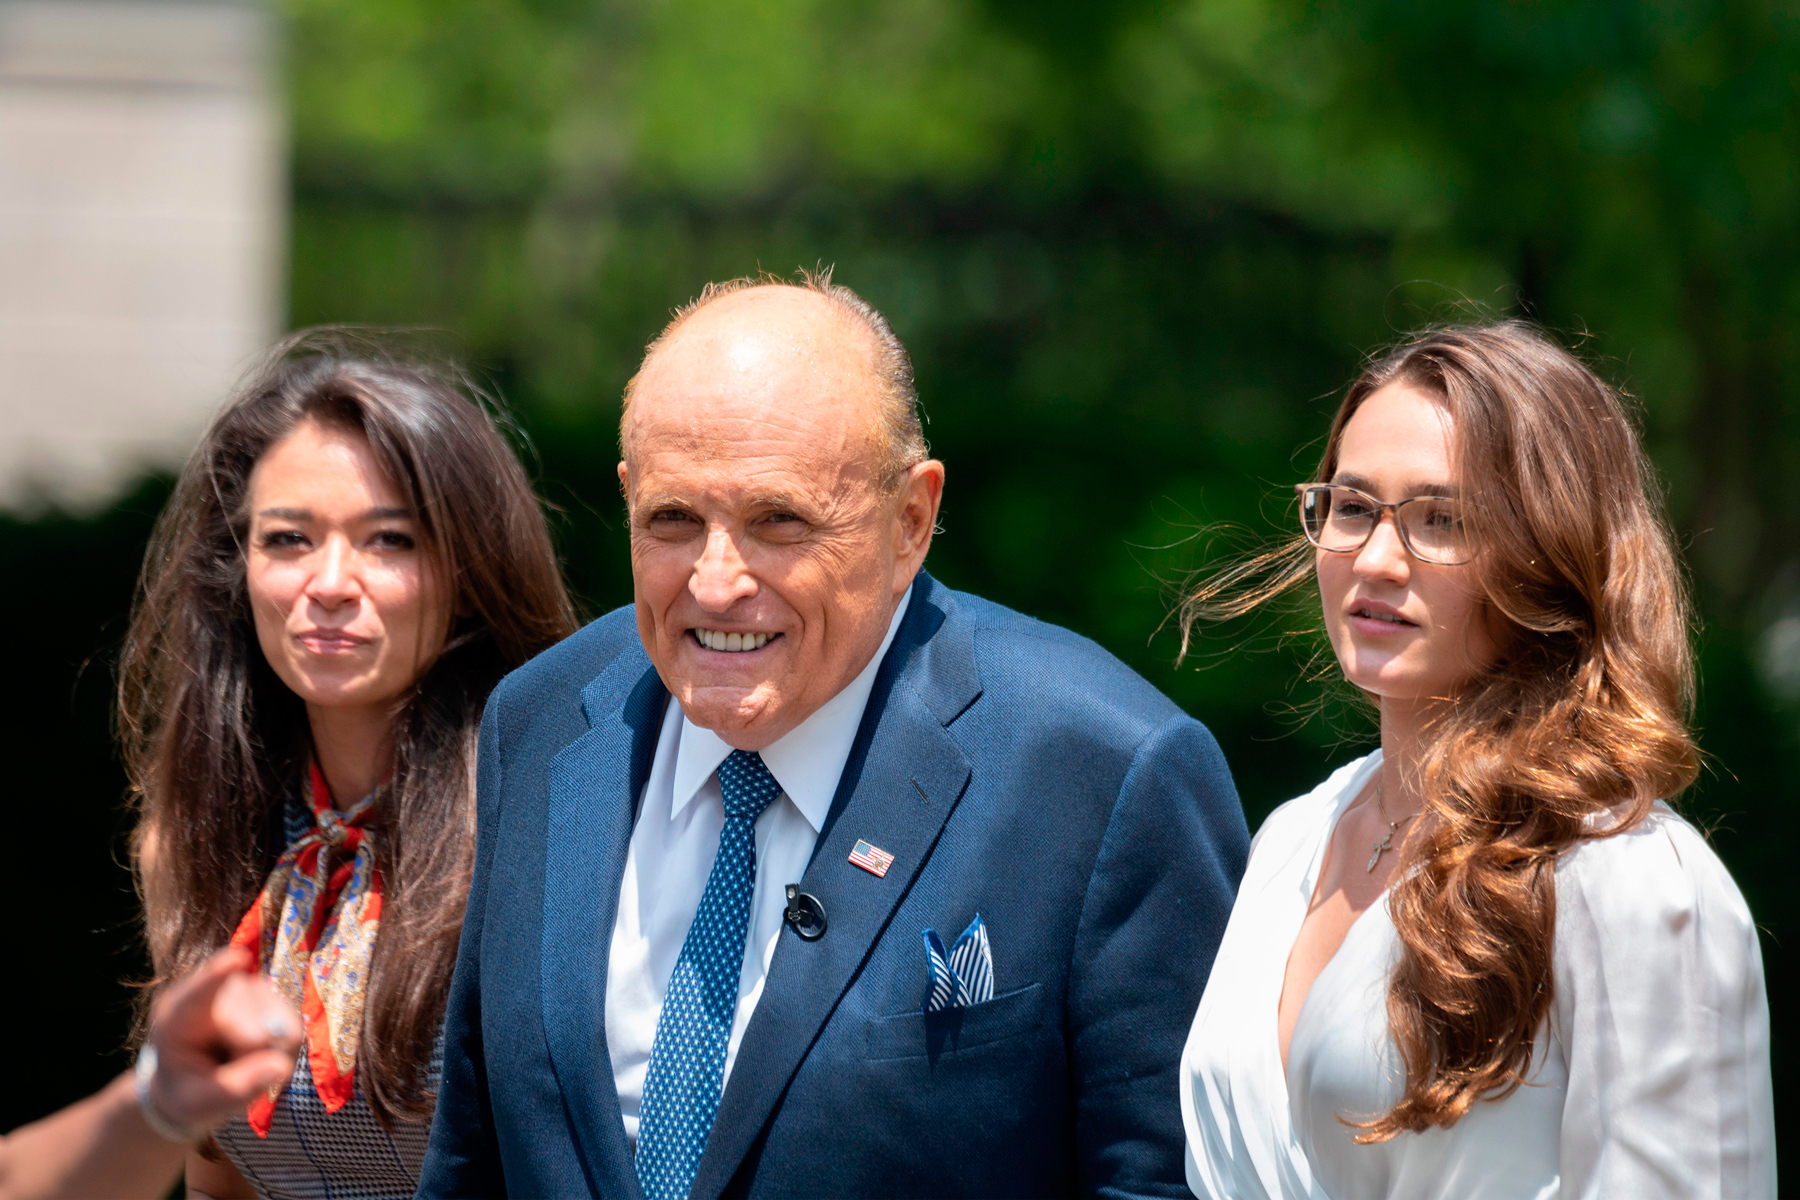 Rudy Giuliani (C), attorney for US President Donald Trump, walks with his personal Communications Director Christianne Allen (R) and One America News Network's Chanel Rion, after speaking at the White House in Washington, DC, on July 1, 2020. (Photo by JIM WATSON / AFP) (Photo by JIM WATSON/AFP via Getty Images)